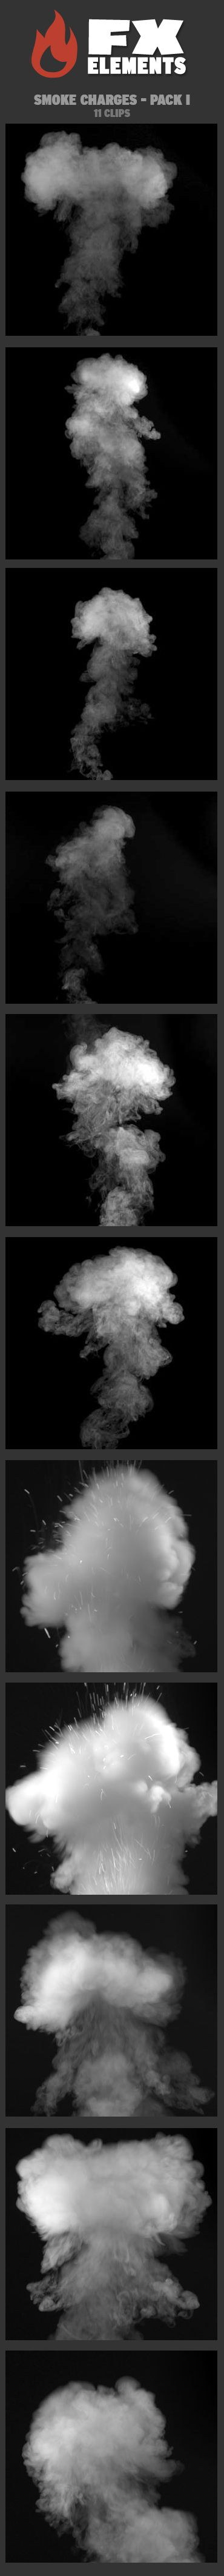 Smoke Charges - Pack I includes 11 FX clips. Smoke charges work well for smoke…